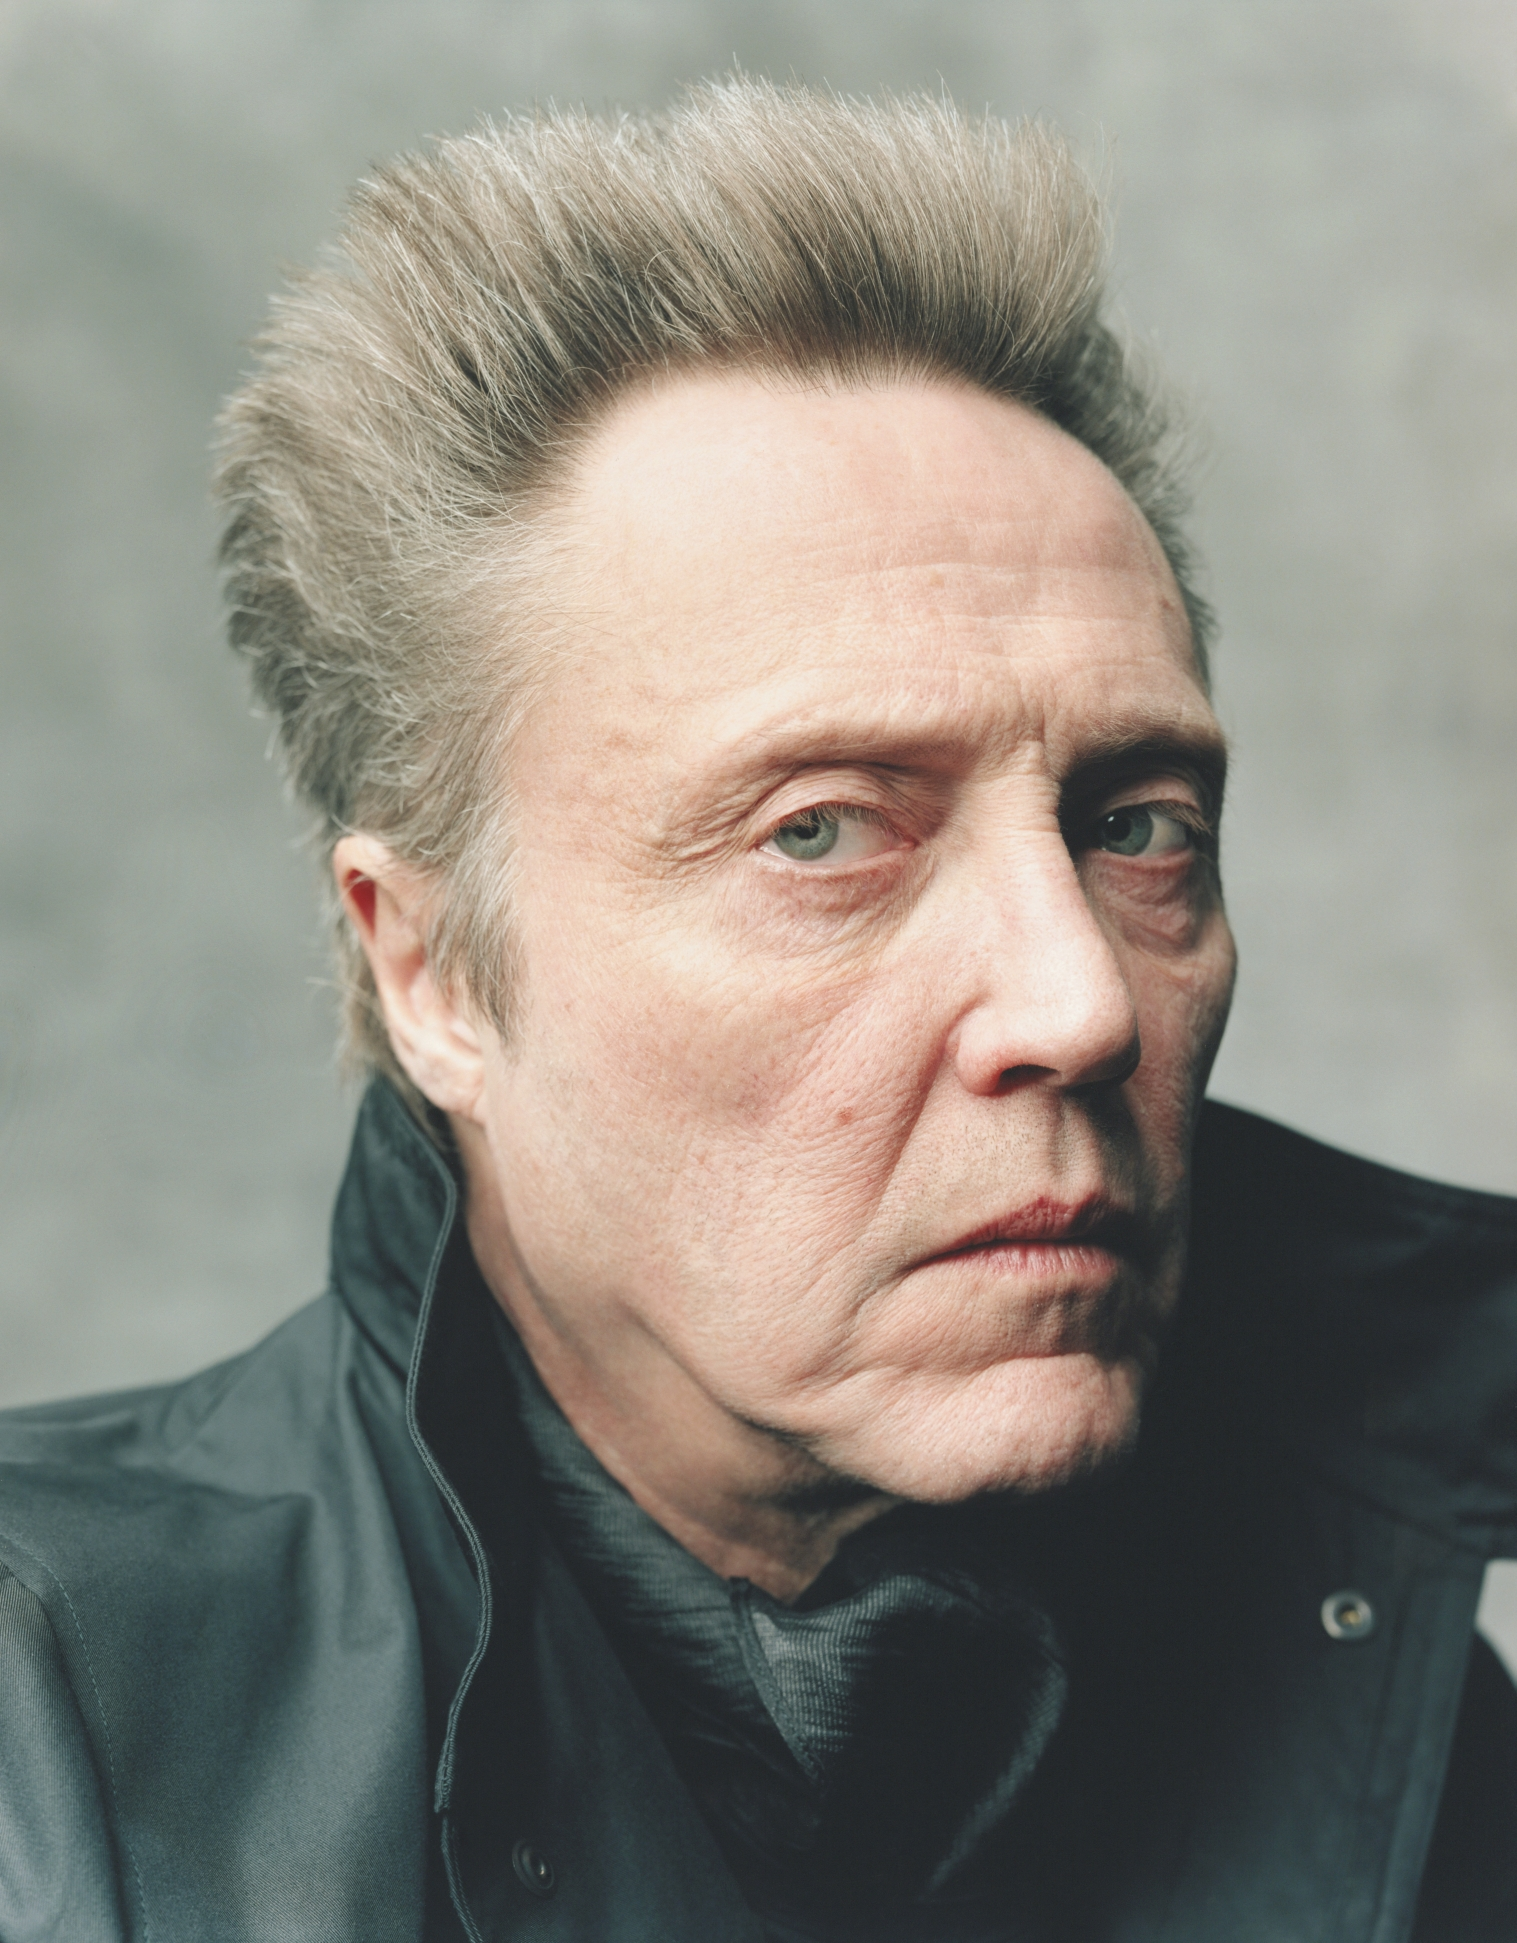 christopher walken dancingchristopher walken i don't know gif, christopher walken young, christopher walken dancing, christopher walken fatboy slim, christopher walken gif, christopher walken клип, christopher walken quotes, christopher walken movies, christopher walken wiki, christopher walken - more cowbell, christopher walken pulp fiction, christopher walken weapon of choice, christopher walken filmography, christopher walken clip, christopher walken jimmy fallon, christopher walken dances, christopher walken snl, christopher walken imdb, christopher walken accent, christopher walken best movies